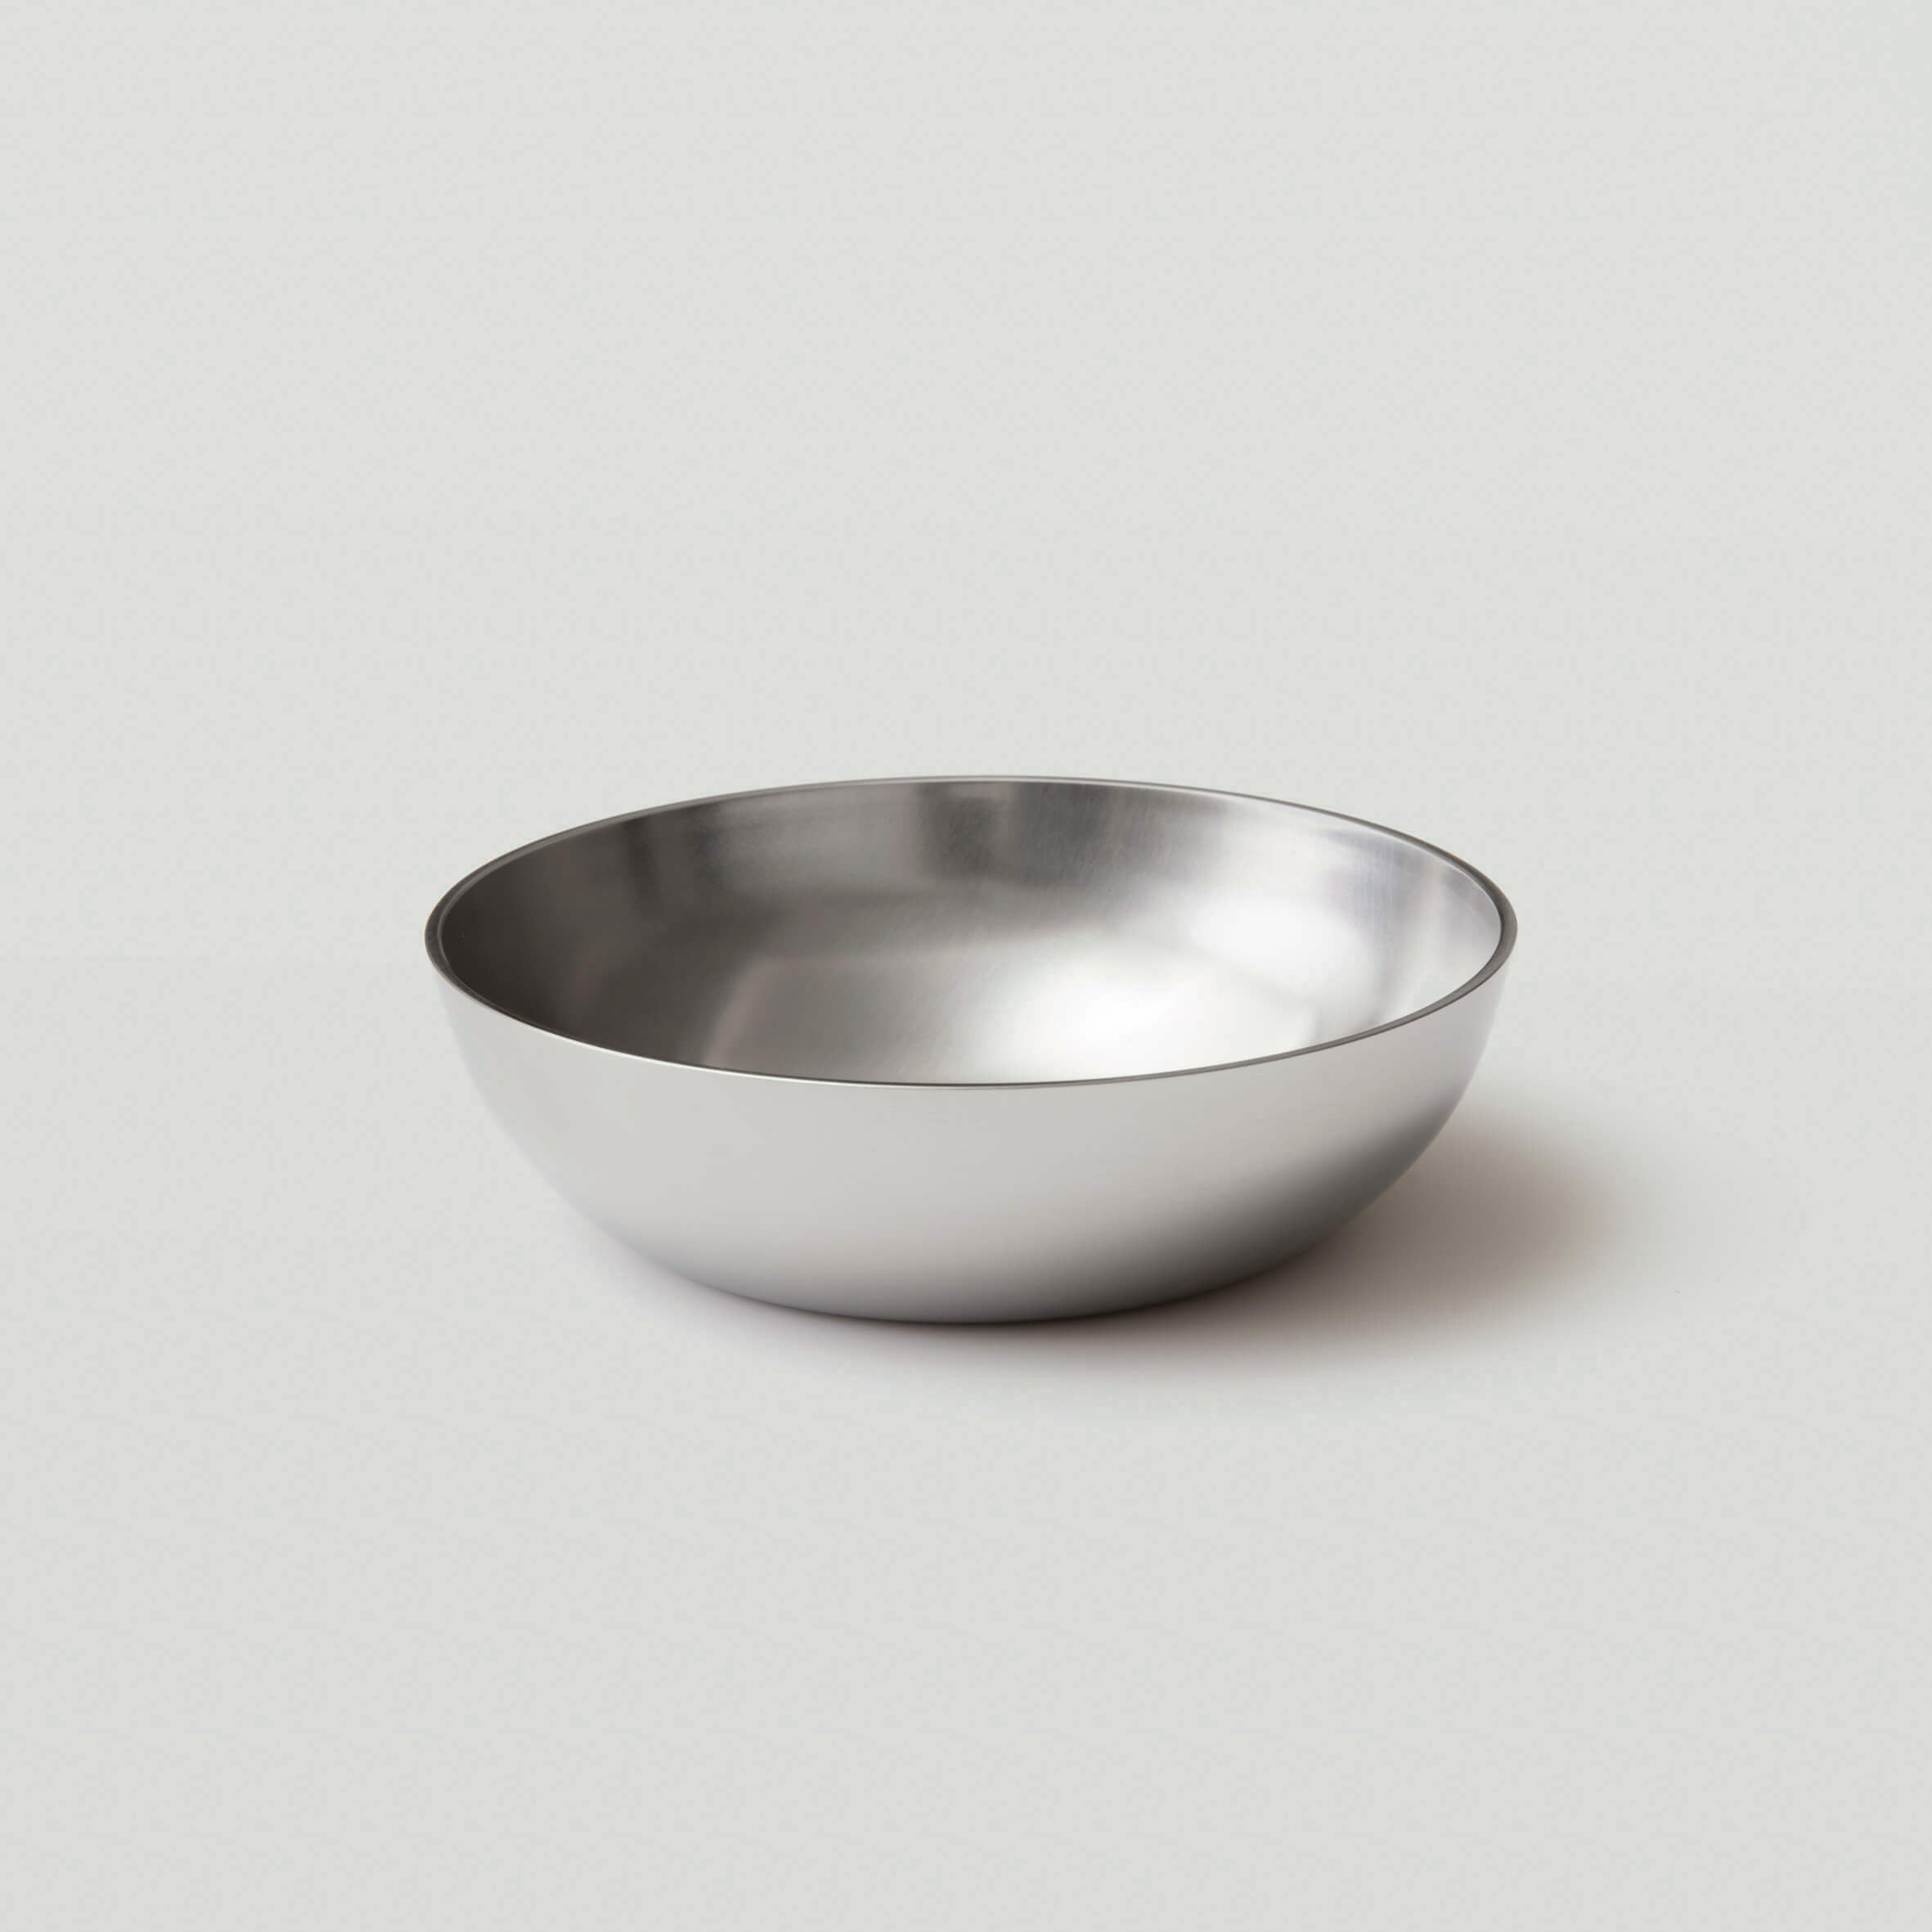 Less Stainless Steel Bowl